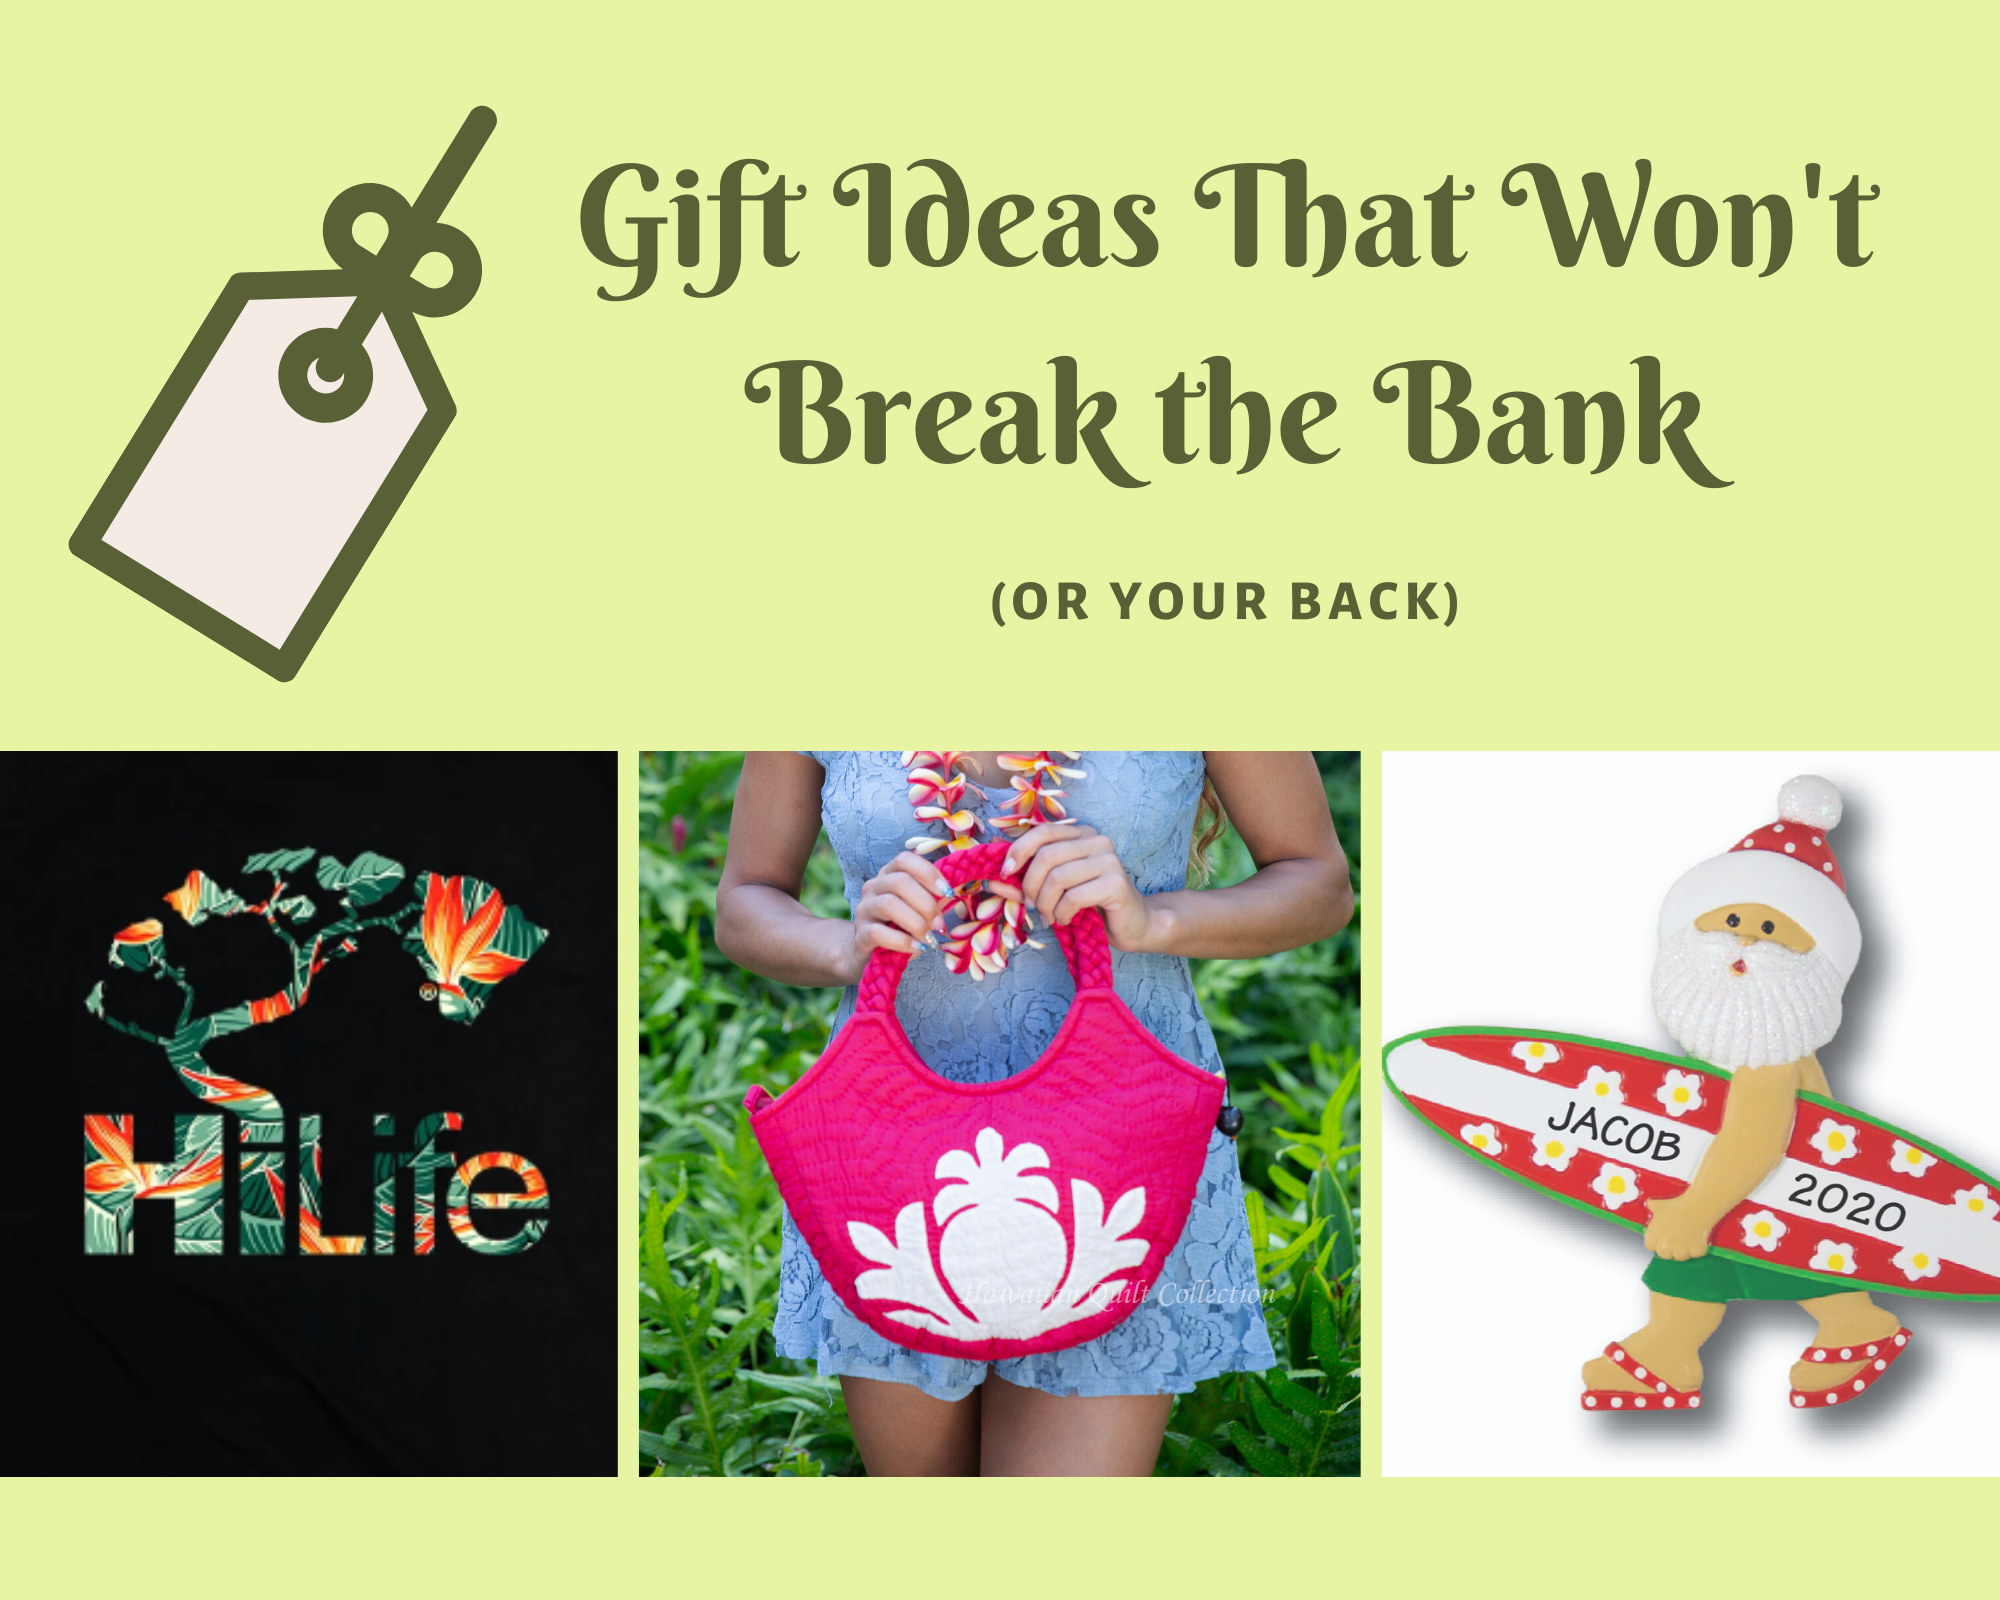 Gift Ideas That Won't Break the Bank (or Your Back)